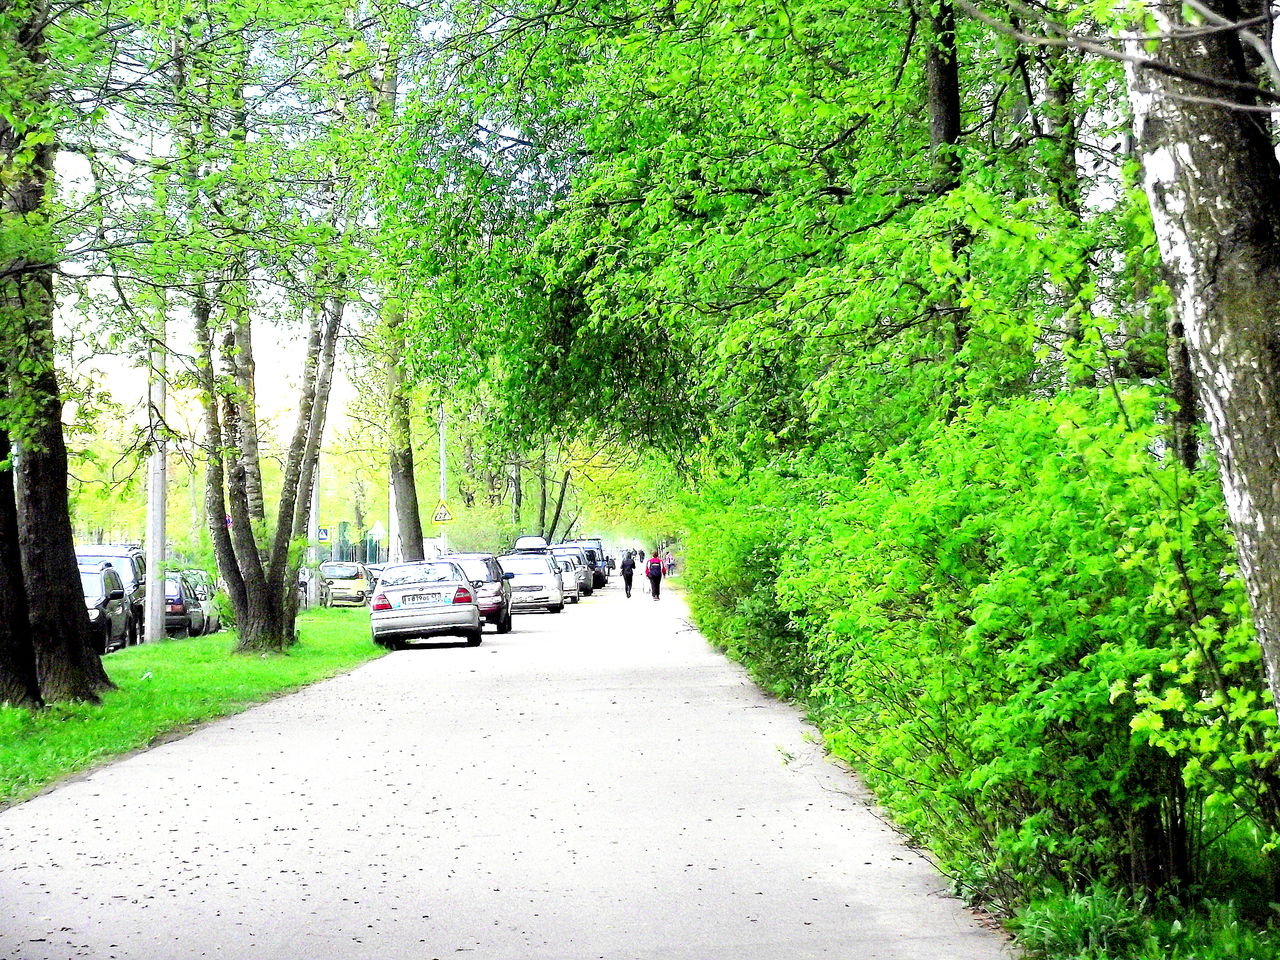 tree, car, transportation, nature, growth, green color, road, forest, mode of transport, land vehicle, outdoors, the way forward, scenics, day, beauty in nature, people